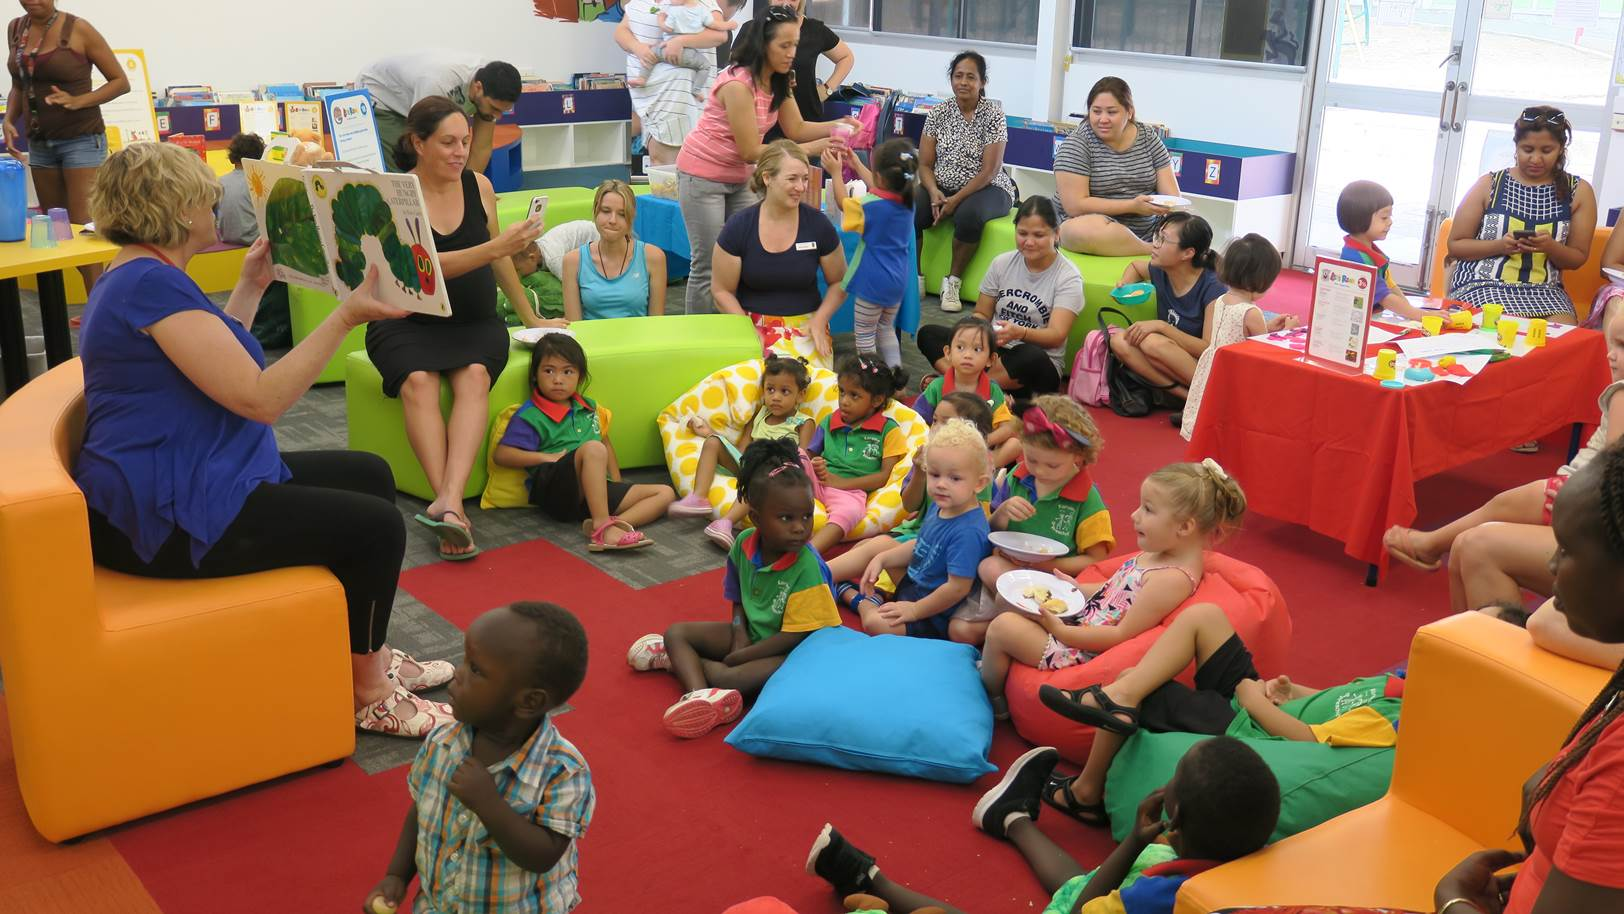 Gray Primary School students during story time